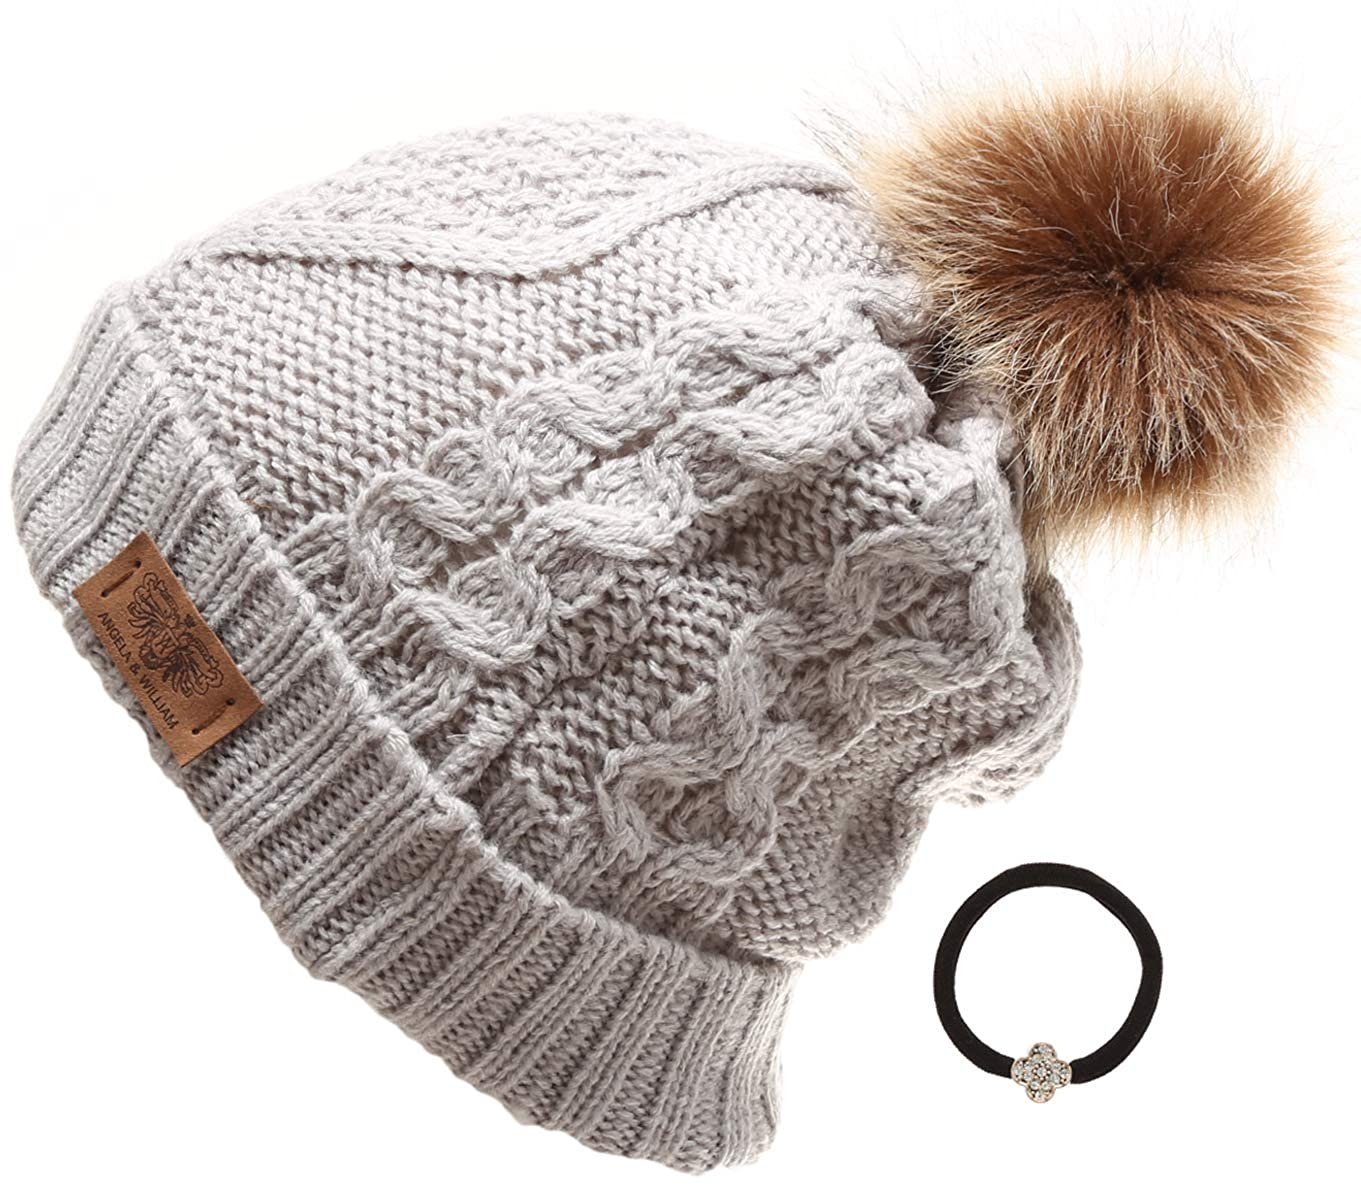 45329532ca5 ANGELA   WILLIAM Women s Winter Fleece Lined Cable Knitted Pom Pom Beanie  Hat with Hair Tie. (Ash Grey) at Amazon Women s Clothing store